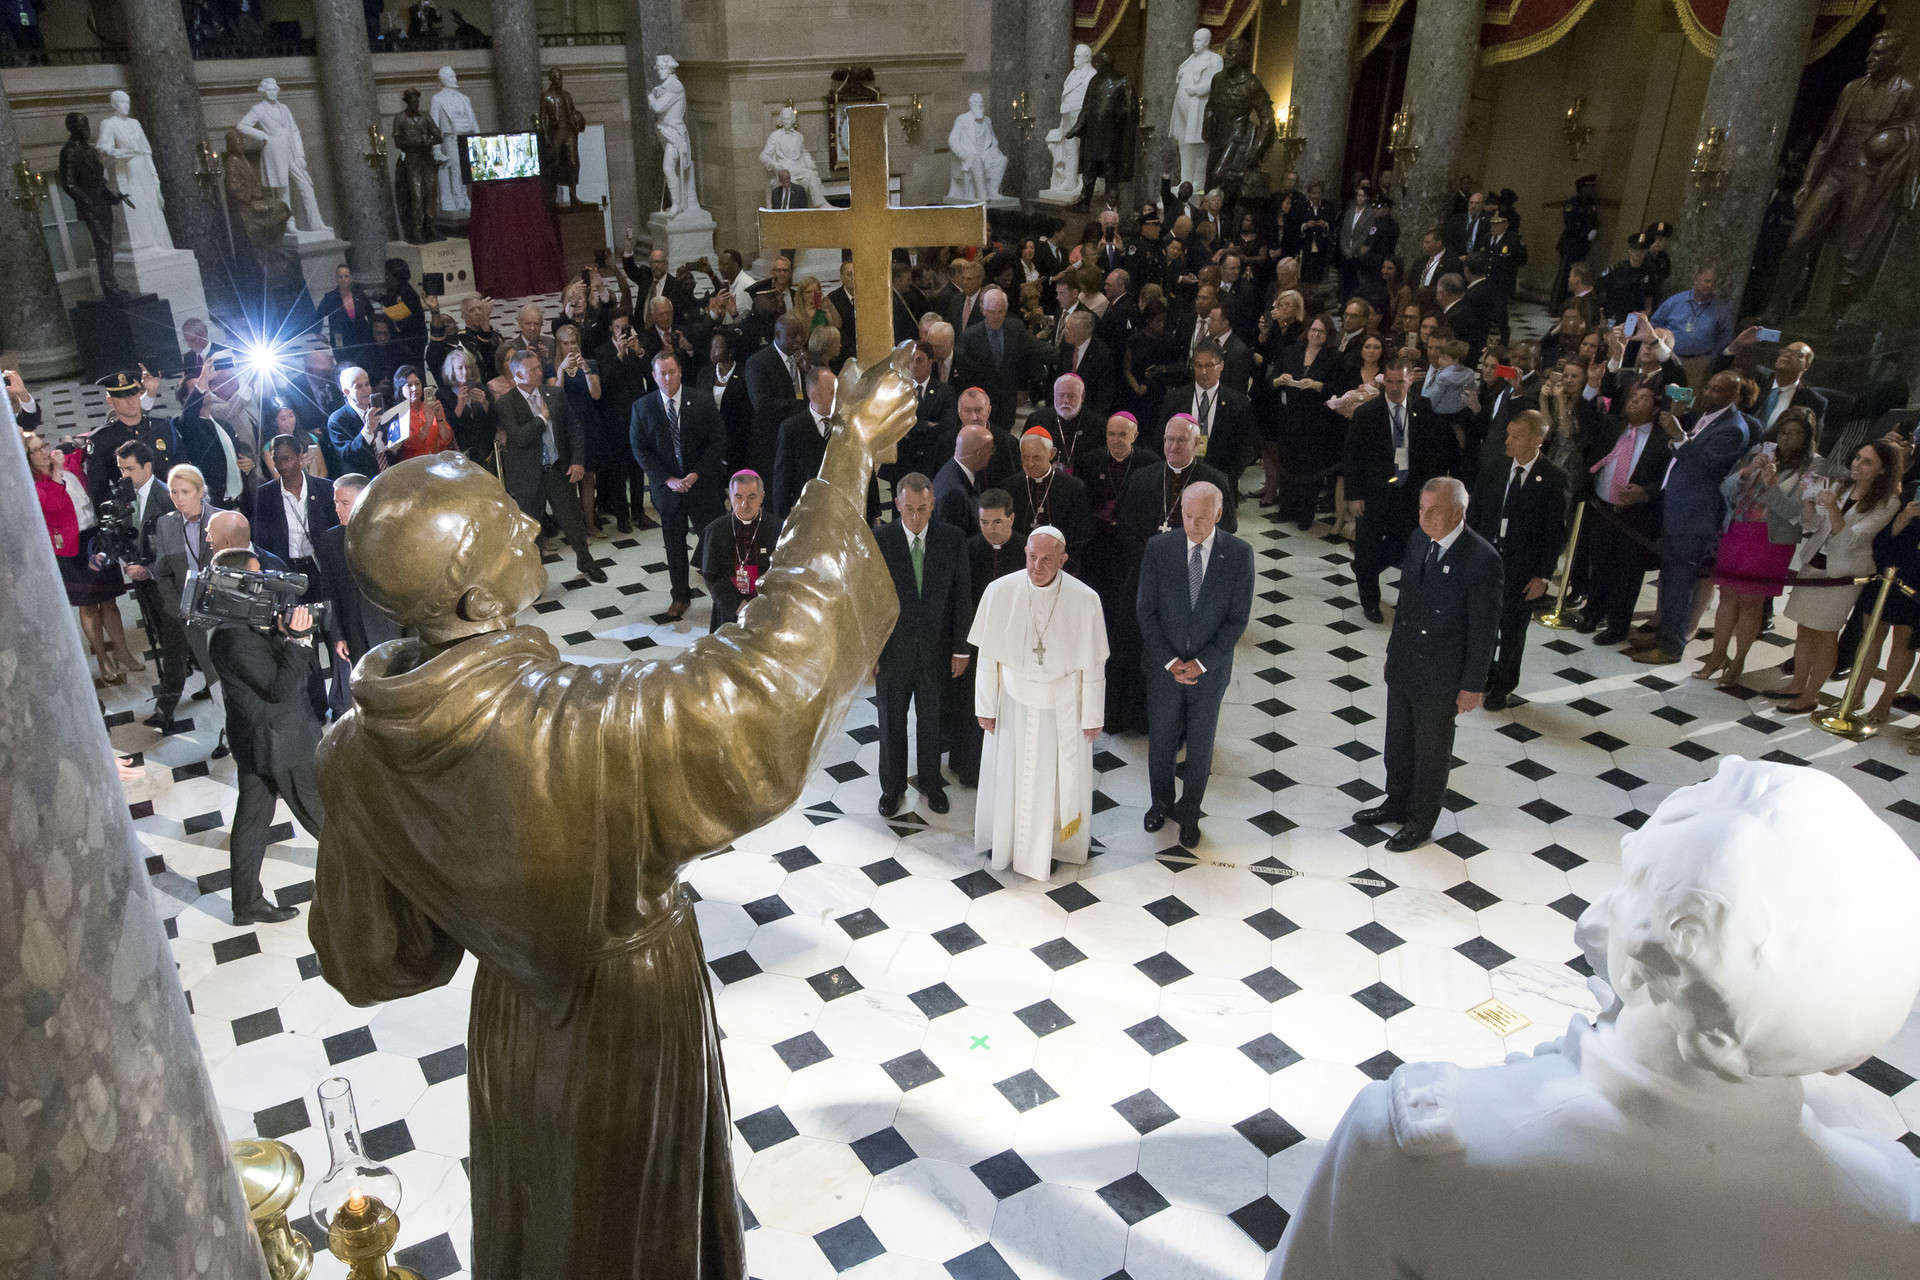 Pope Francis pauses in front of a sculpture of Spanish-born Junipero Serra, the Franciscan Friar known for starting missions in California, in Statuary Hall at the U.S. Capitol on September 24, 2015 in Washington, DC.